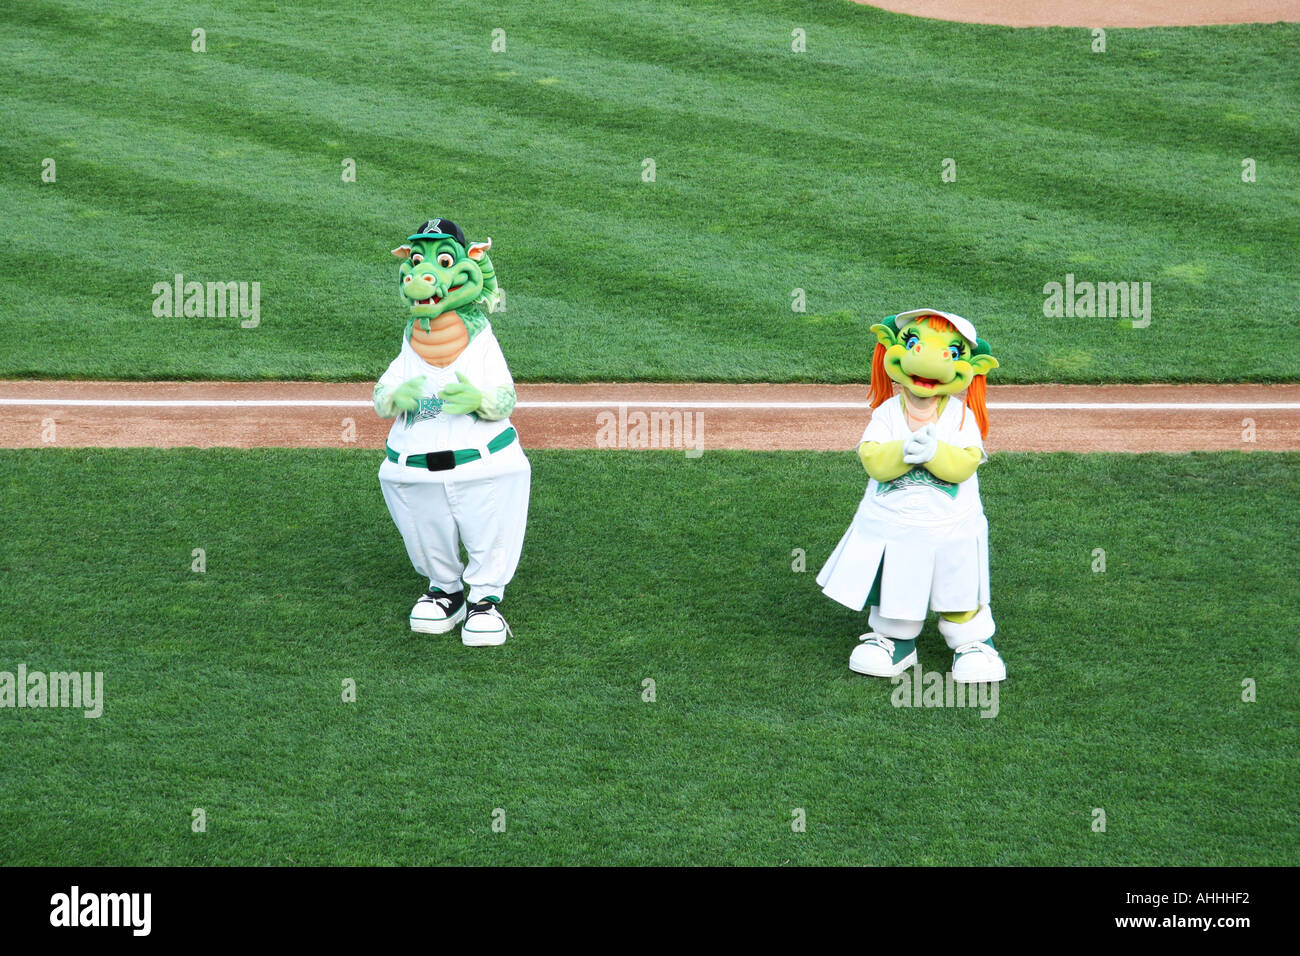 Heater and Gem the Dayton Dragons Mascots perform for